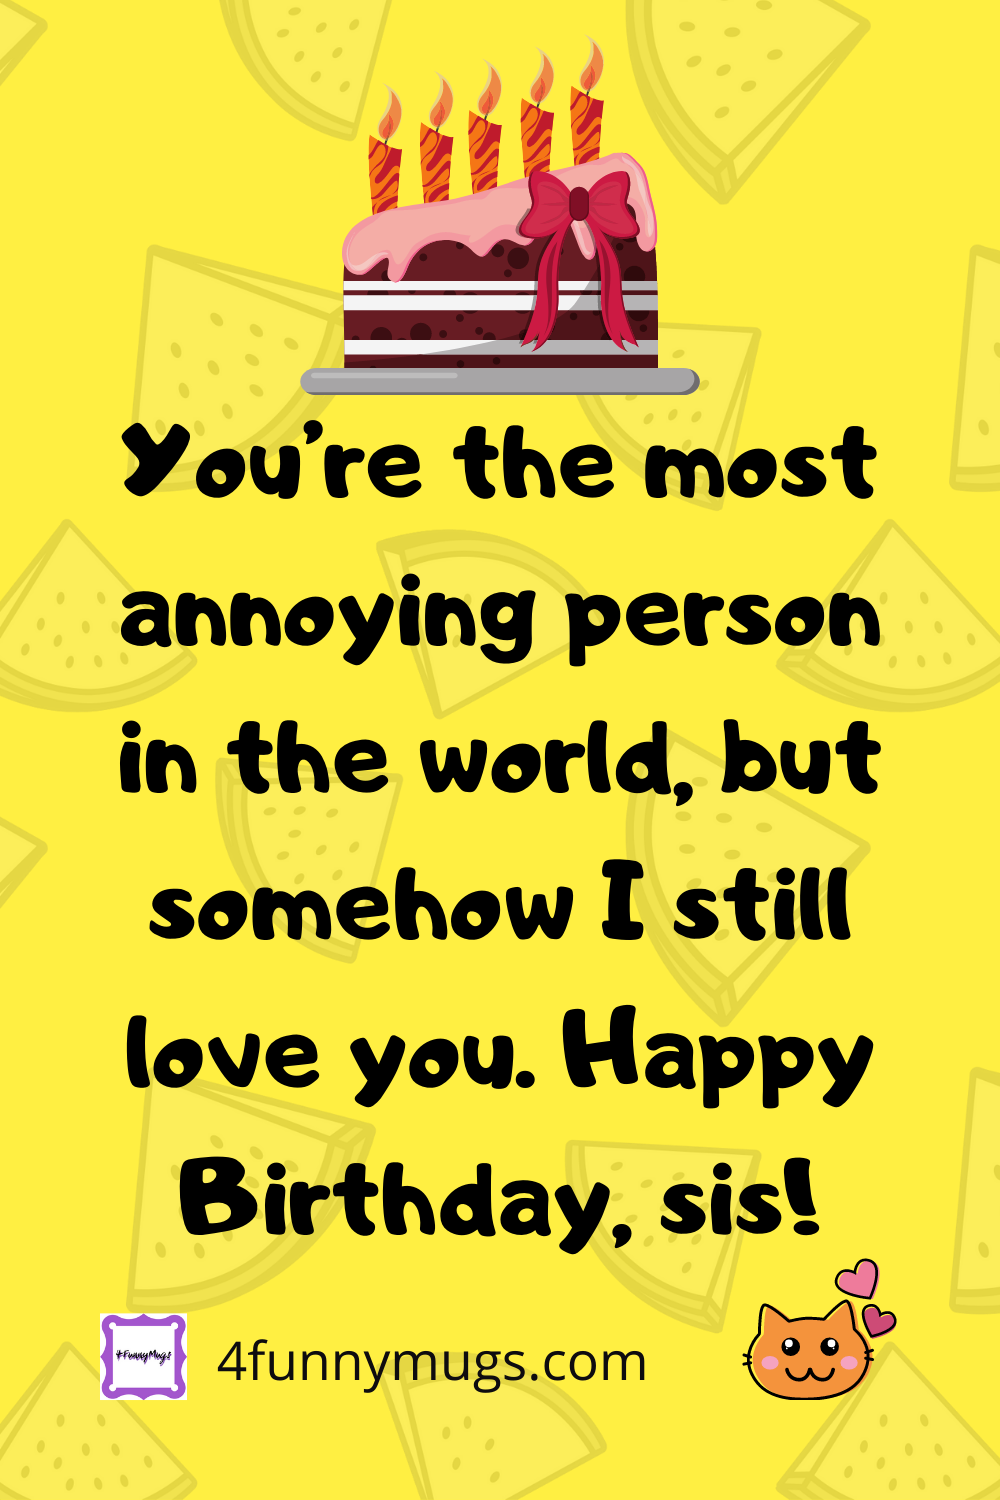 Funny Quotes For Sister S Birthday Sister Quotes Sister Quotes Funny Sister Birthday